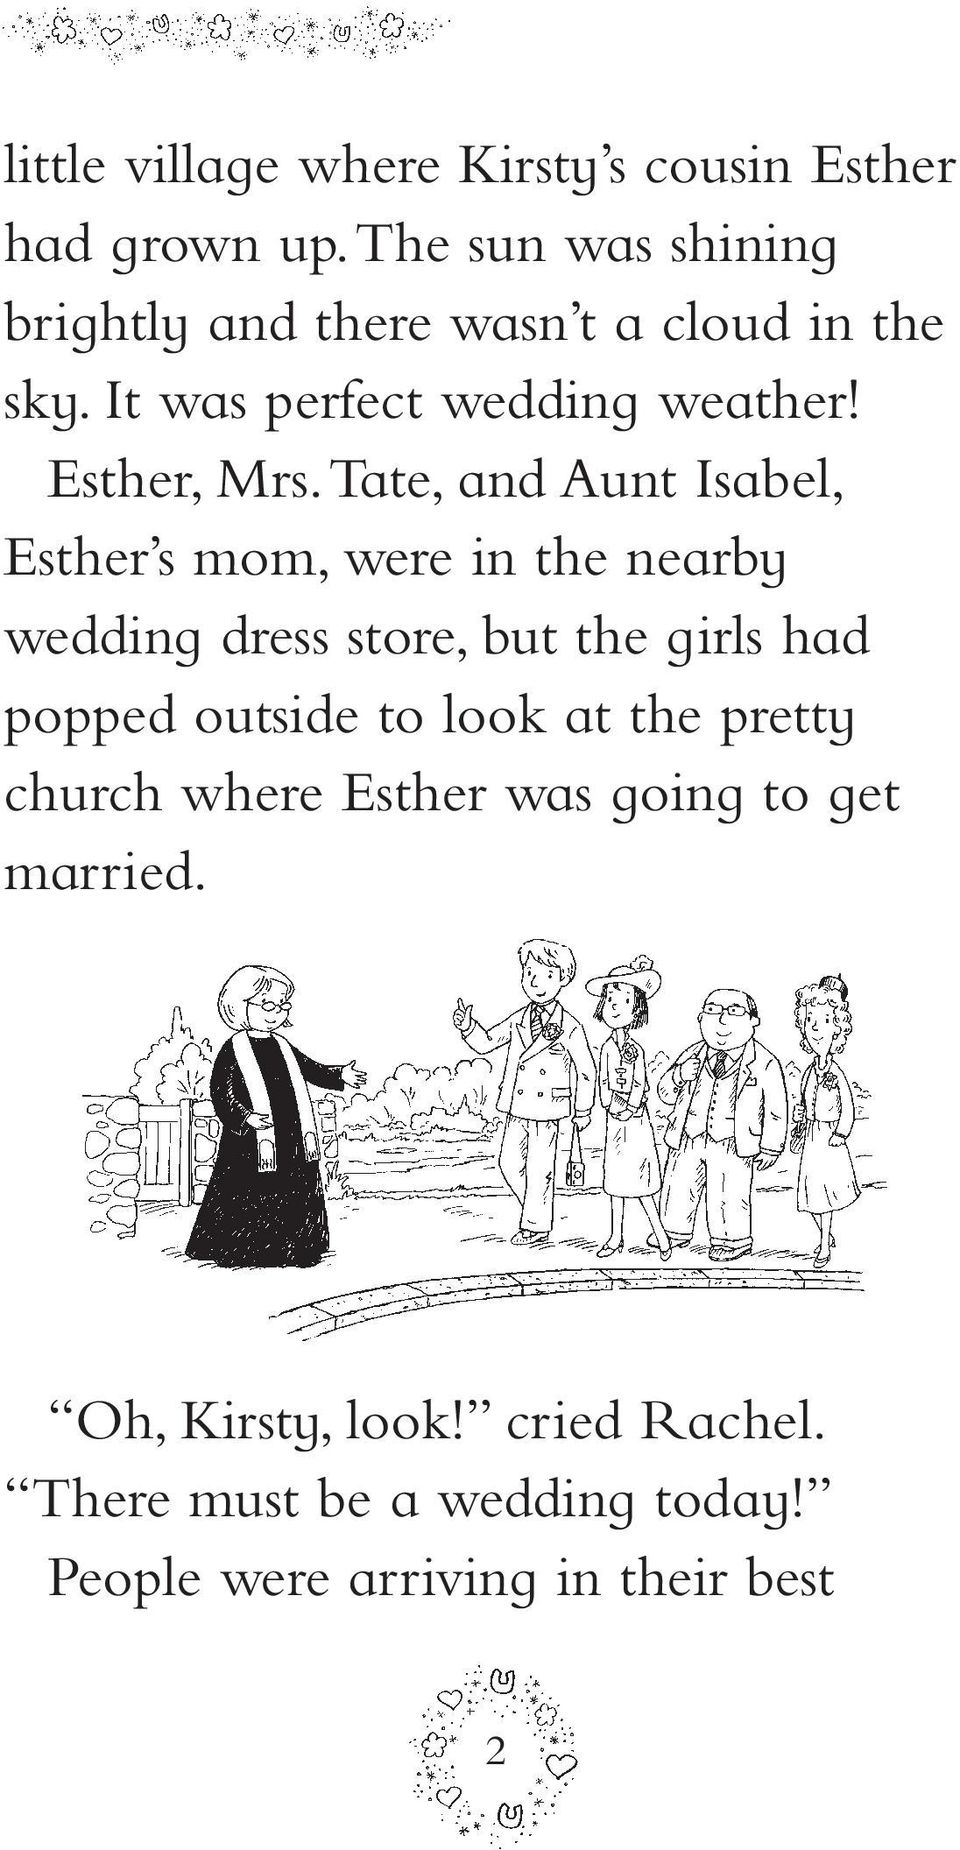 Tate, and Aunt Isabel, Esther s mom, were in the nearby wedding dress store, but the girls had popped outside